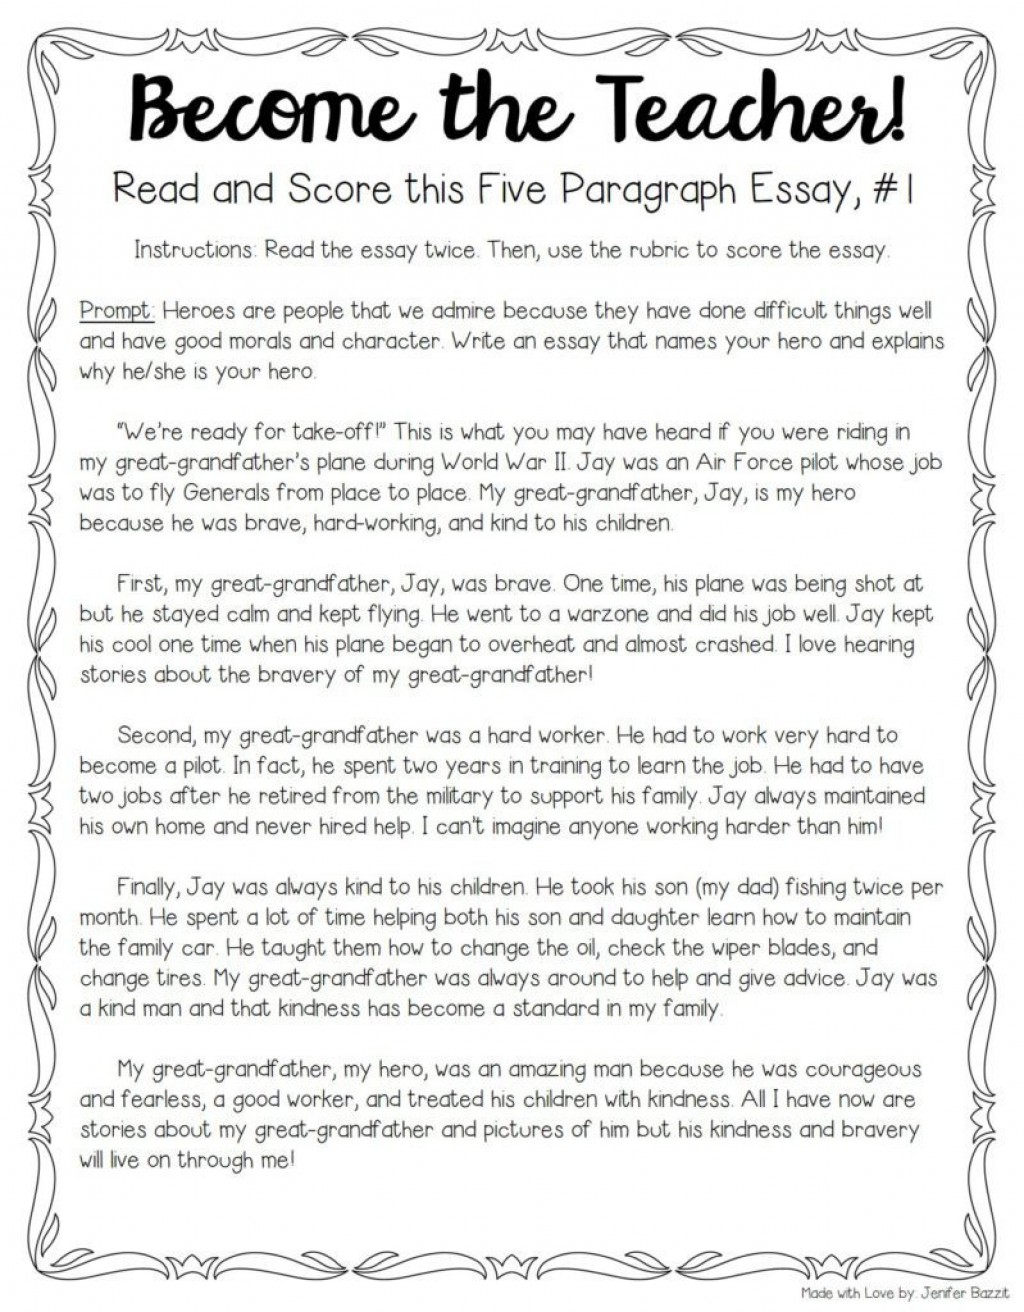 014 Five Paragraph Essay Full 799x1024resize7992c1024 Example Read Unusual My Reddit For Free Online Large